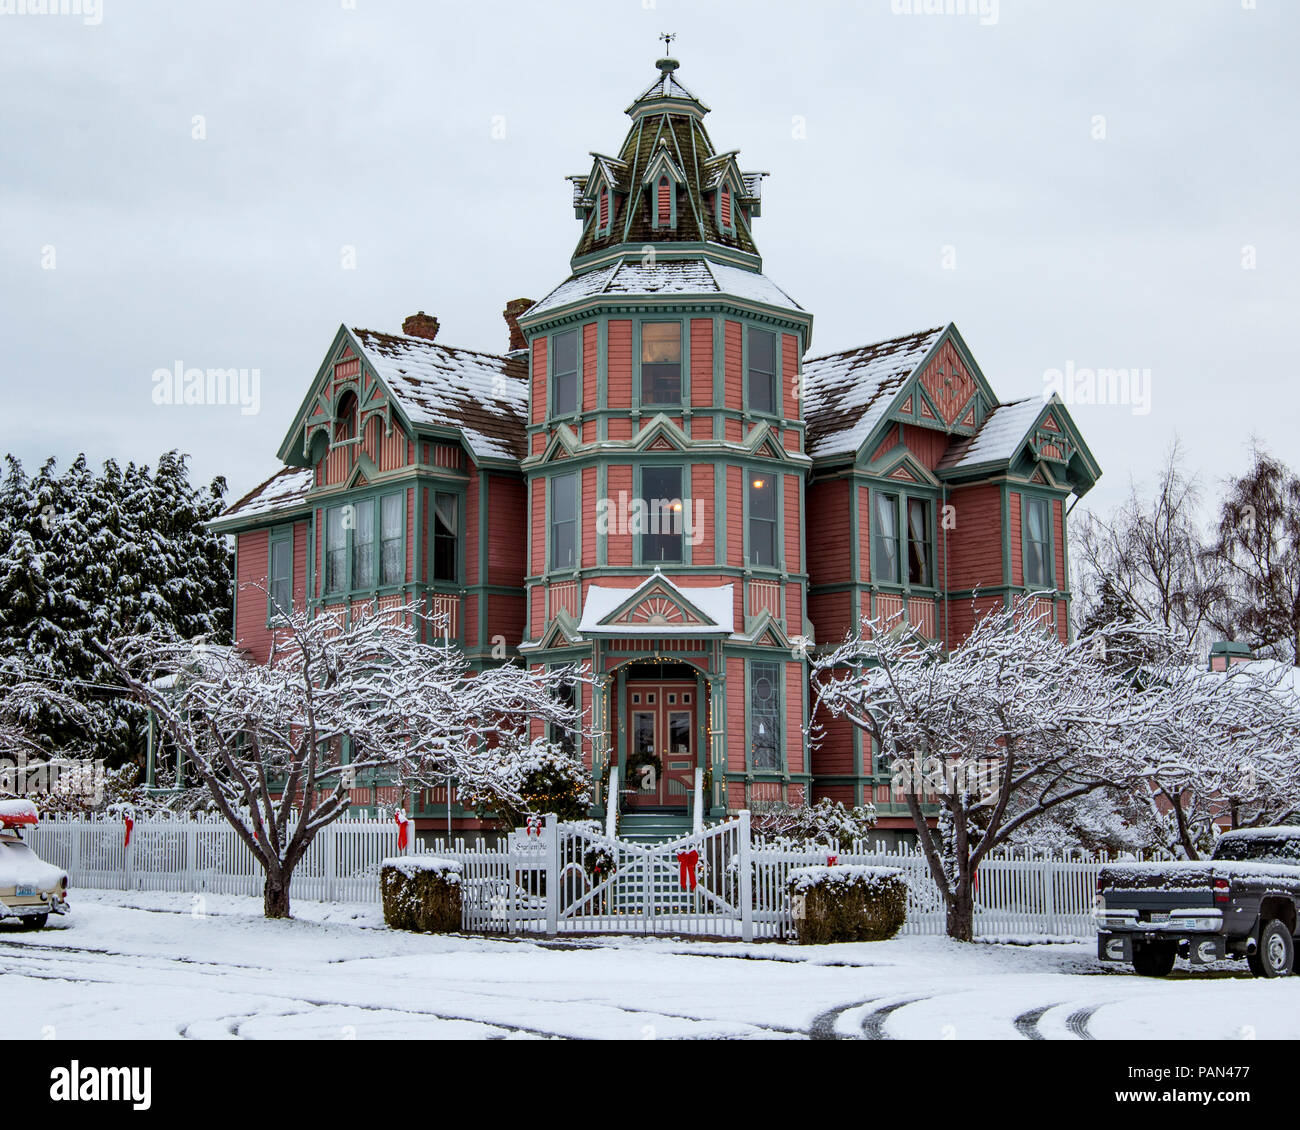 Port Townsend Starrett House, victorian house in winter snow. - Stock Image